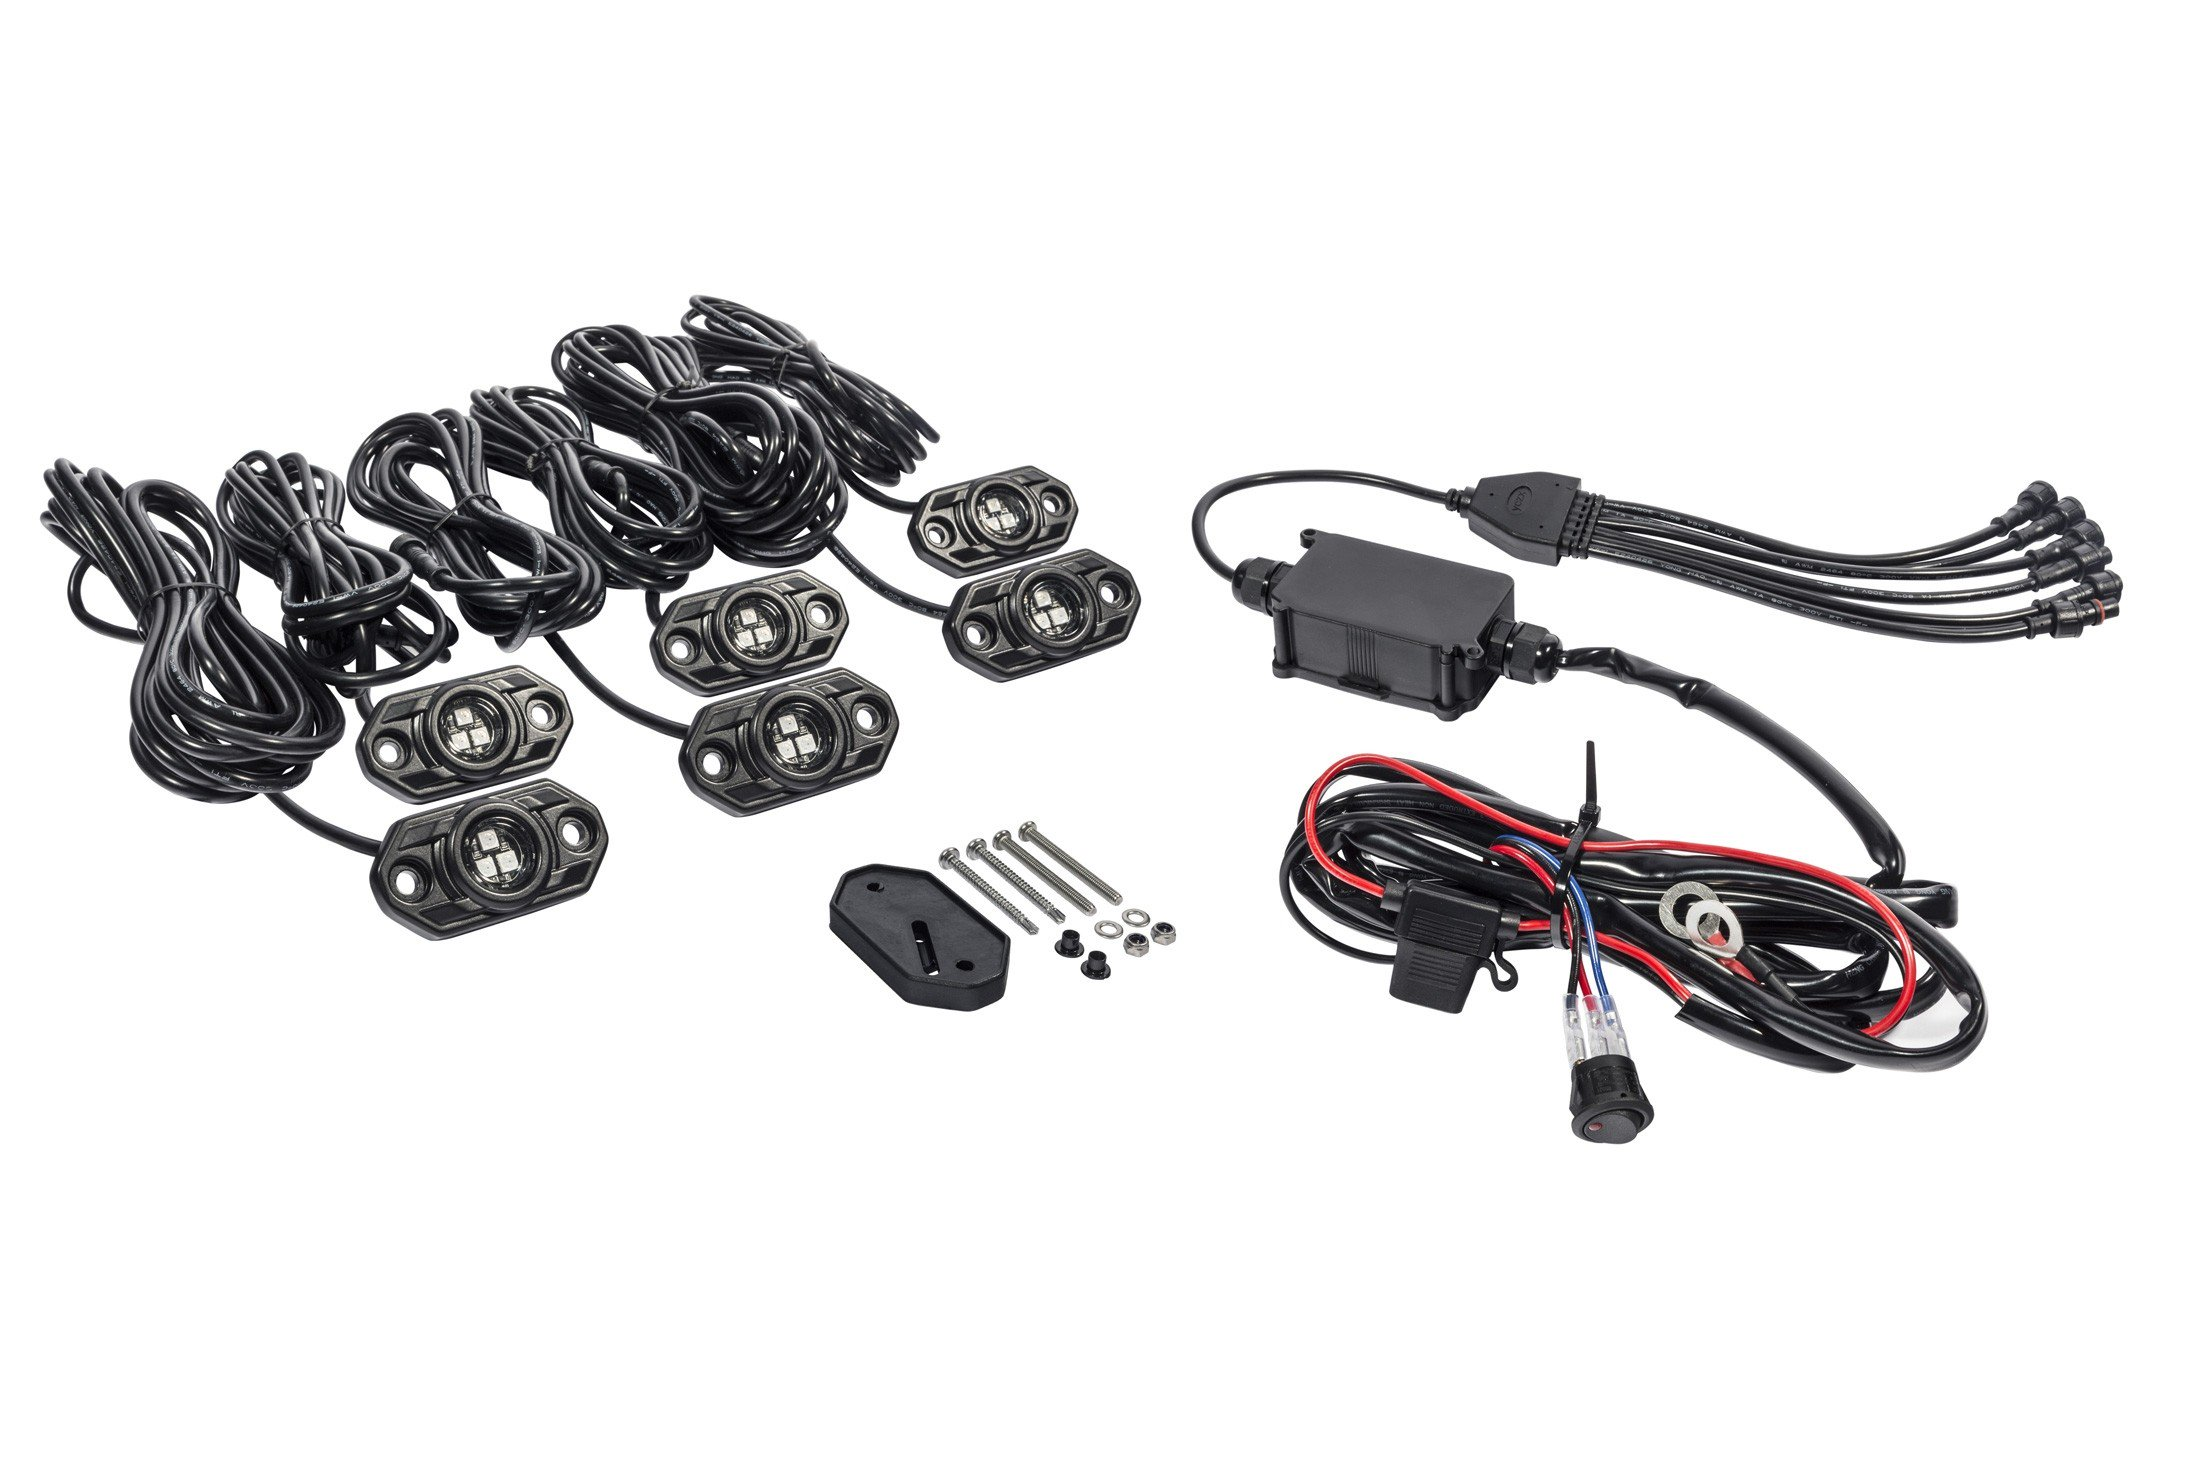 Kc Hilites C Series Rgb Led Rock Light Kit